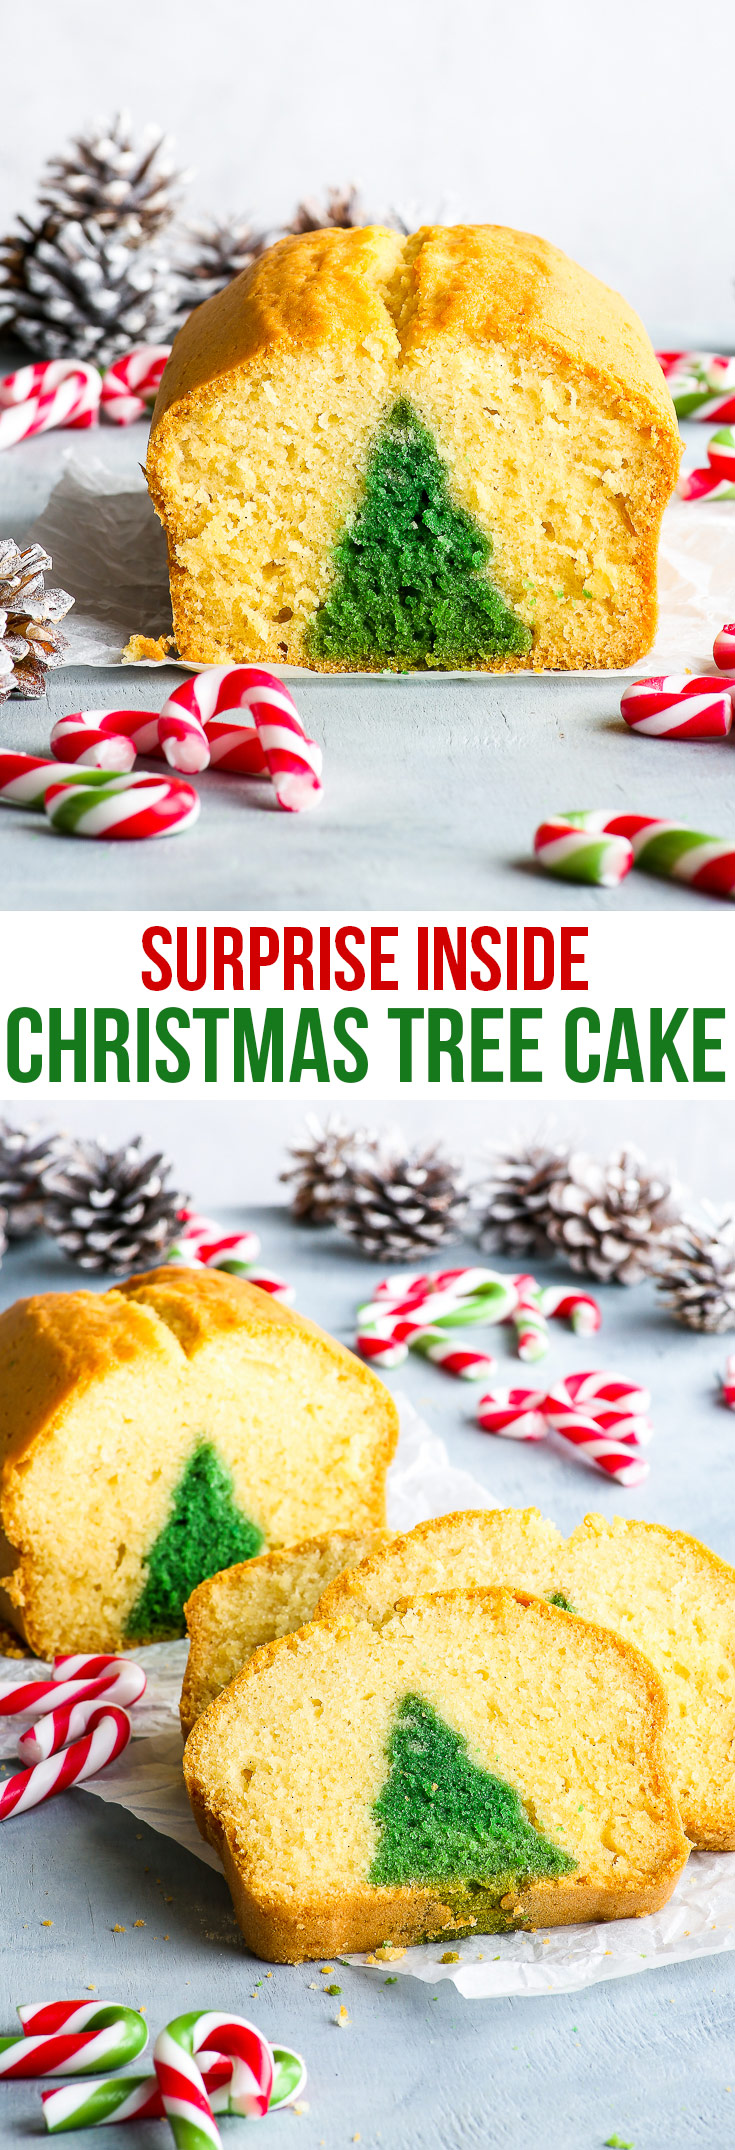 Surprise Inside Christmas Tree Cake {gluten, nut & soy free, dairy free option} - This Christmas tree cake may look intimidating, but is actually super easy to make! A surprise inside cake that takes a simple loaf cake and transforms it into a work of art – and with no fuss or fancy equipment! This is the simple, yet impressive, Christmas dessert recipe everyone should have up their sleeves.